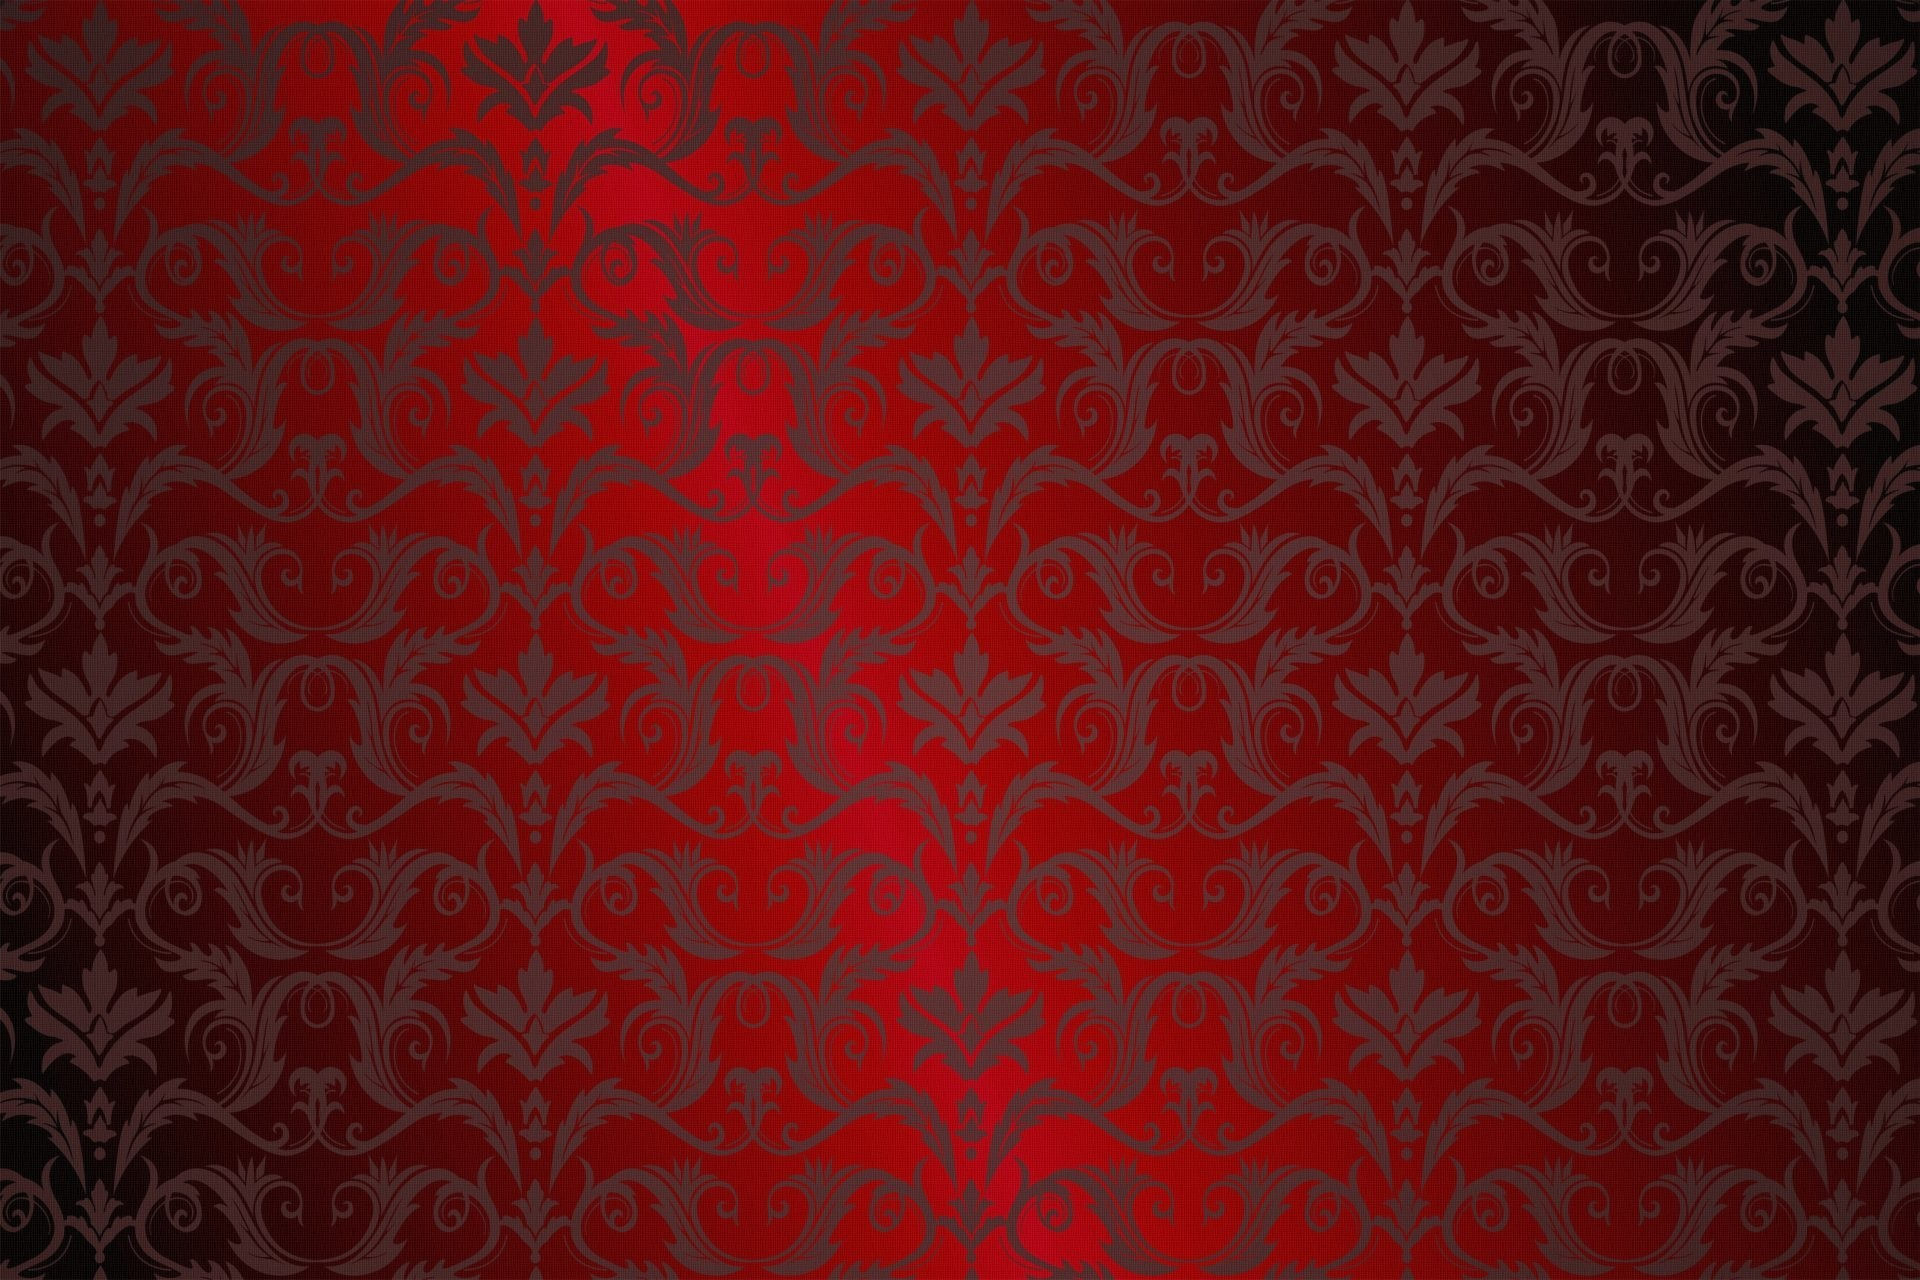 Red wallpaper background free stock photos download (13,867 Free .